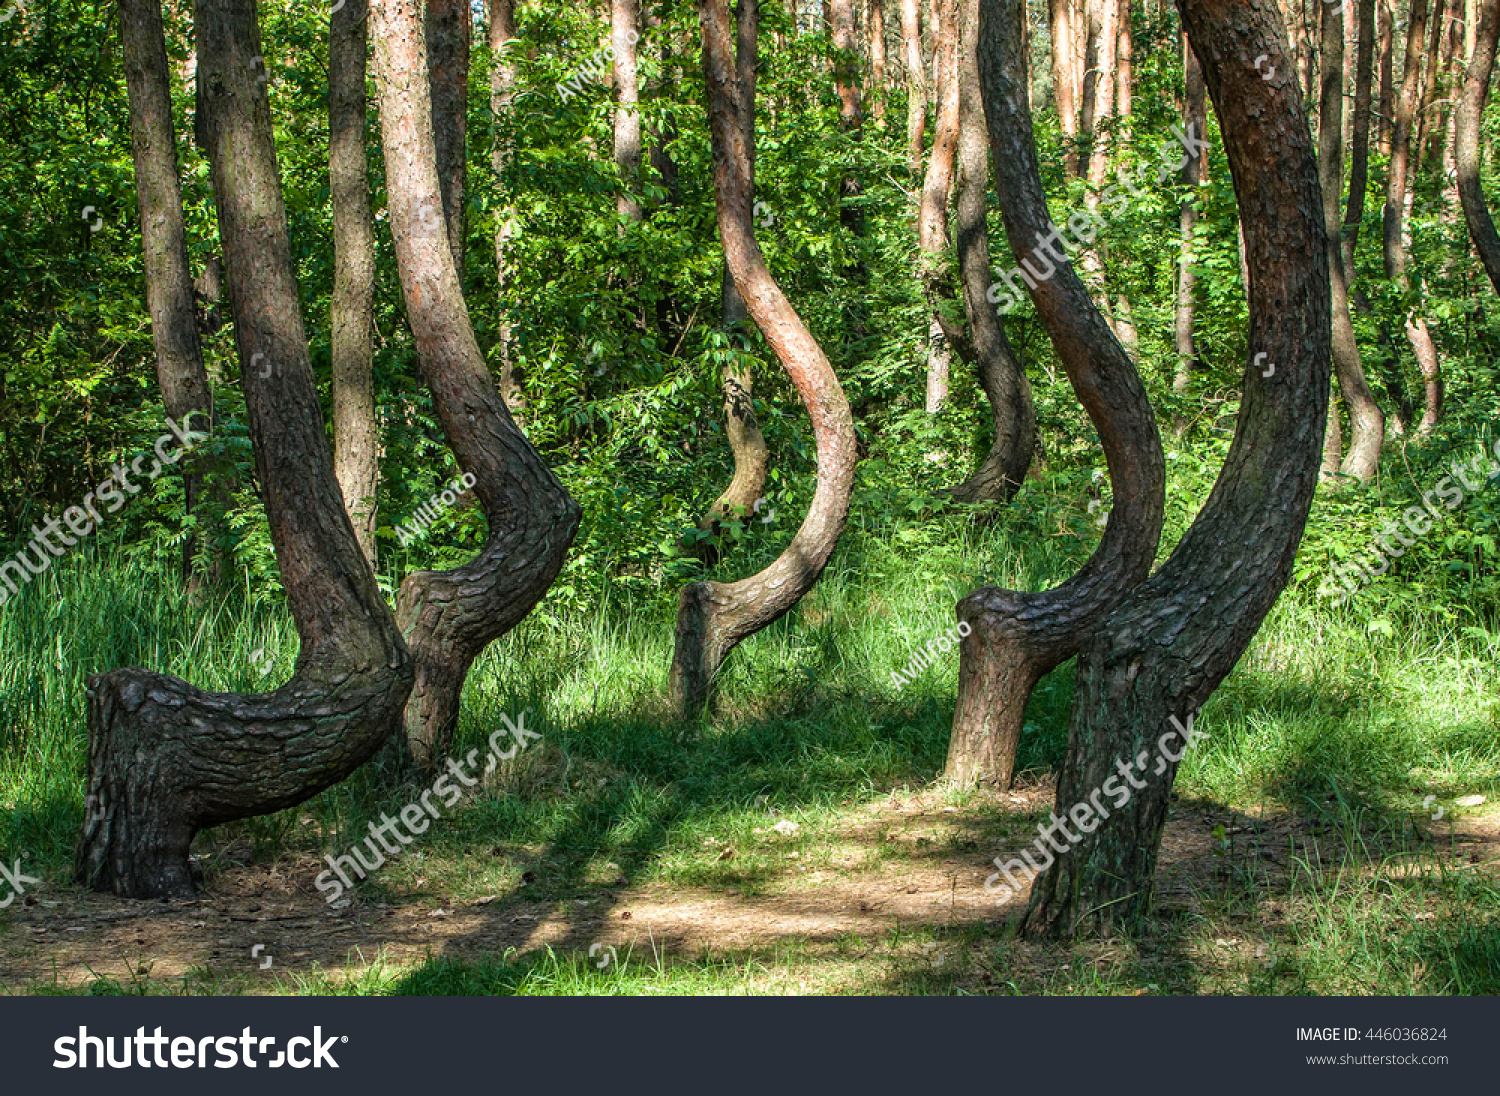 Crooked Forest Oddlyshaped Pine Trees Nowe Stock Photo Edit Now 446036824,Best Paint For Bathroom Ceiling To Prevent Mold Australia